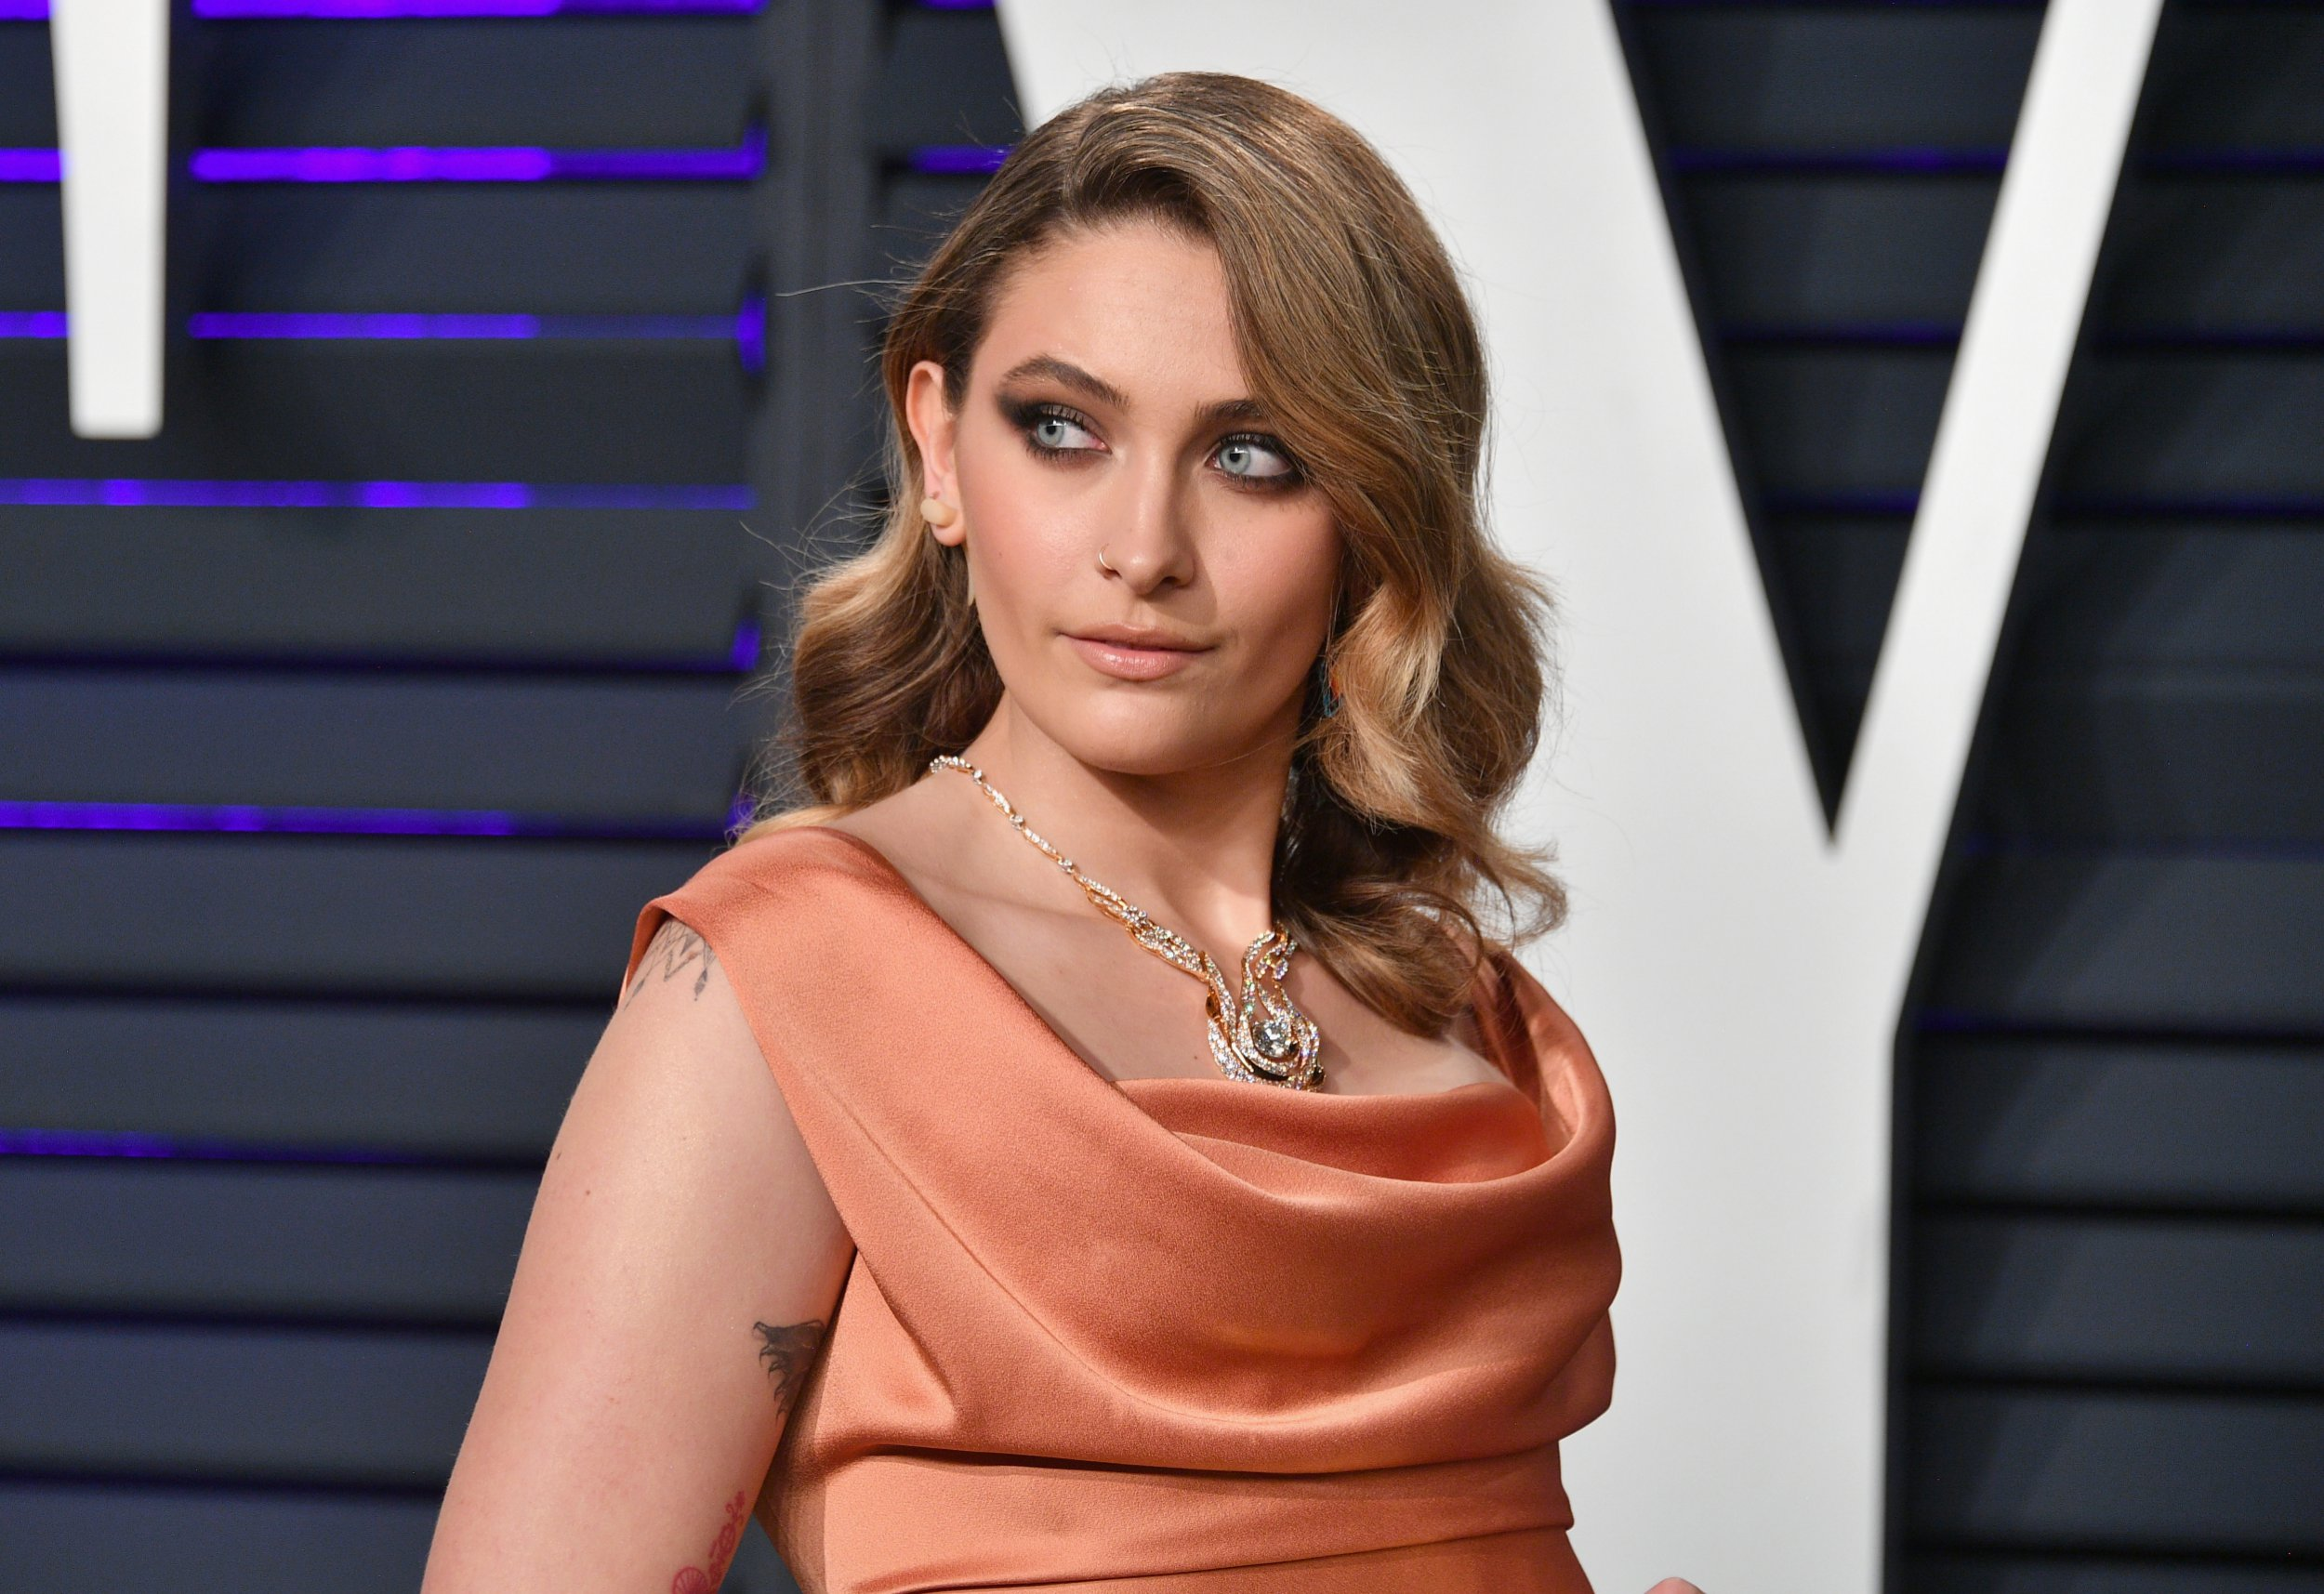 Paris Jackson 'rushed to hospital after suicide attempt'